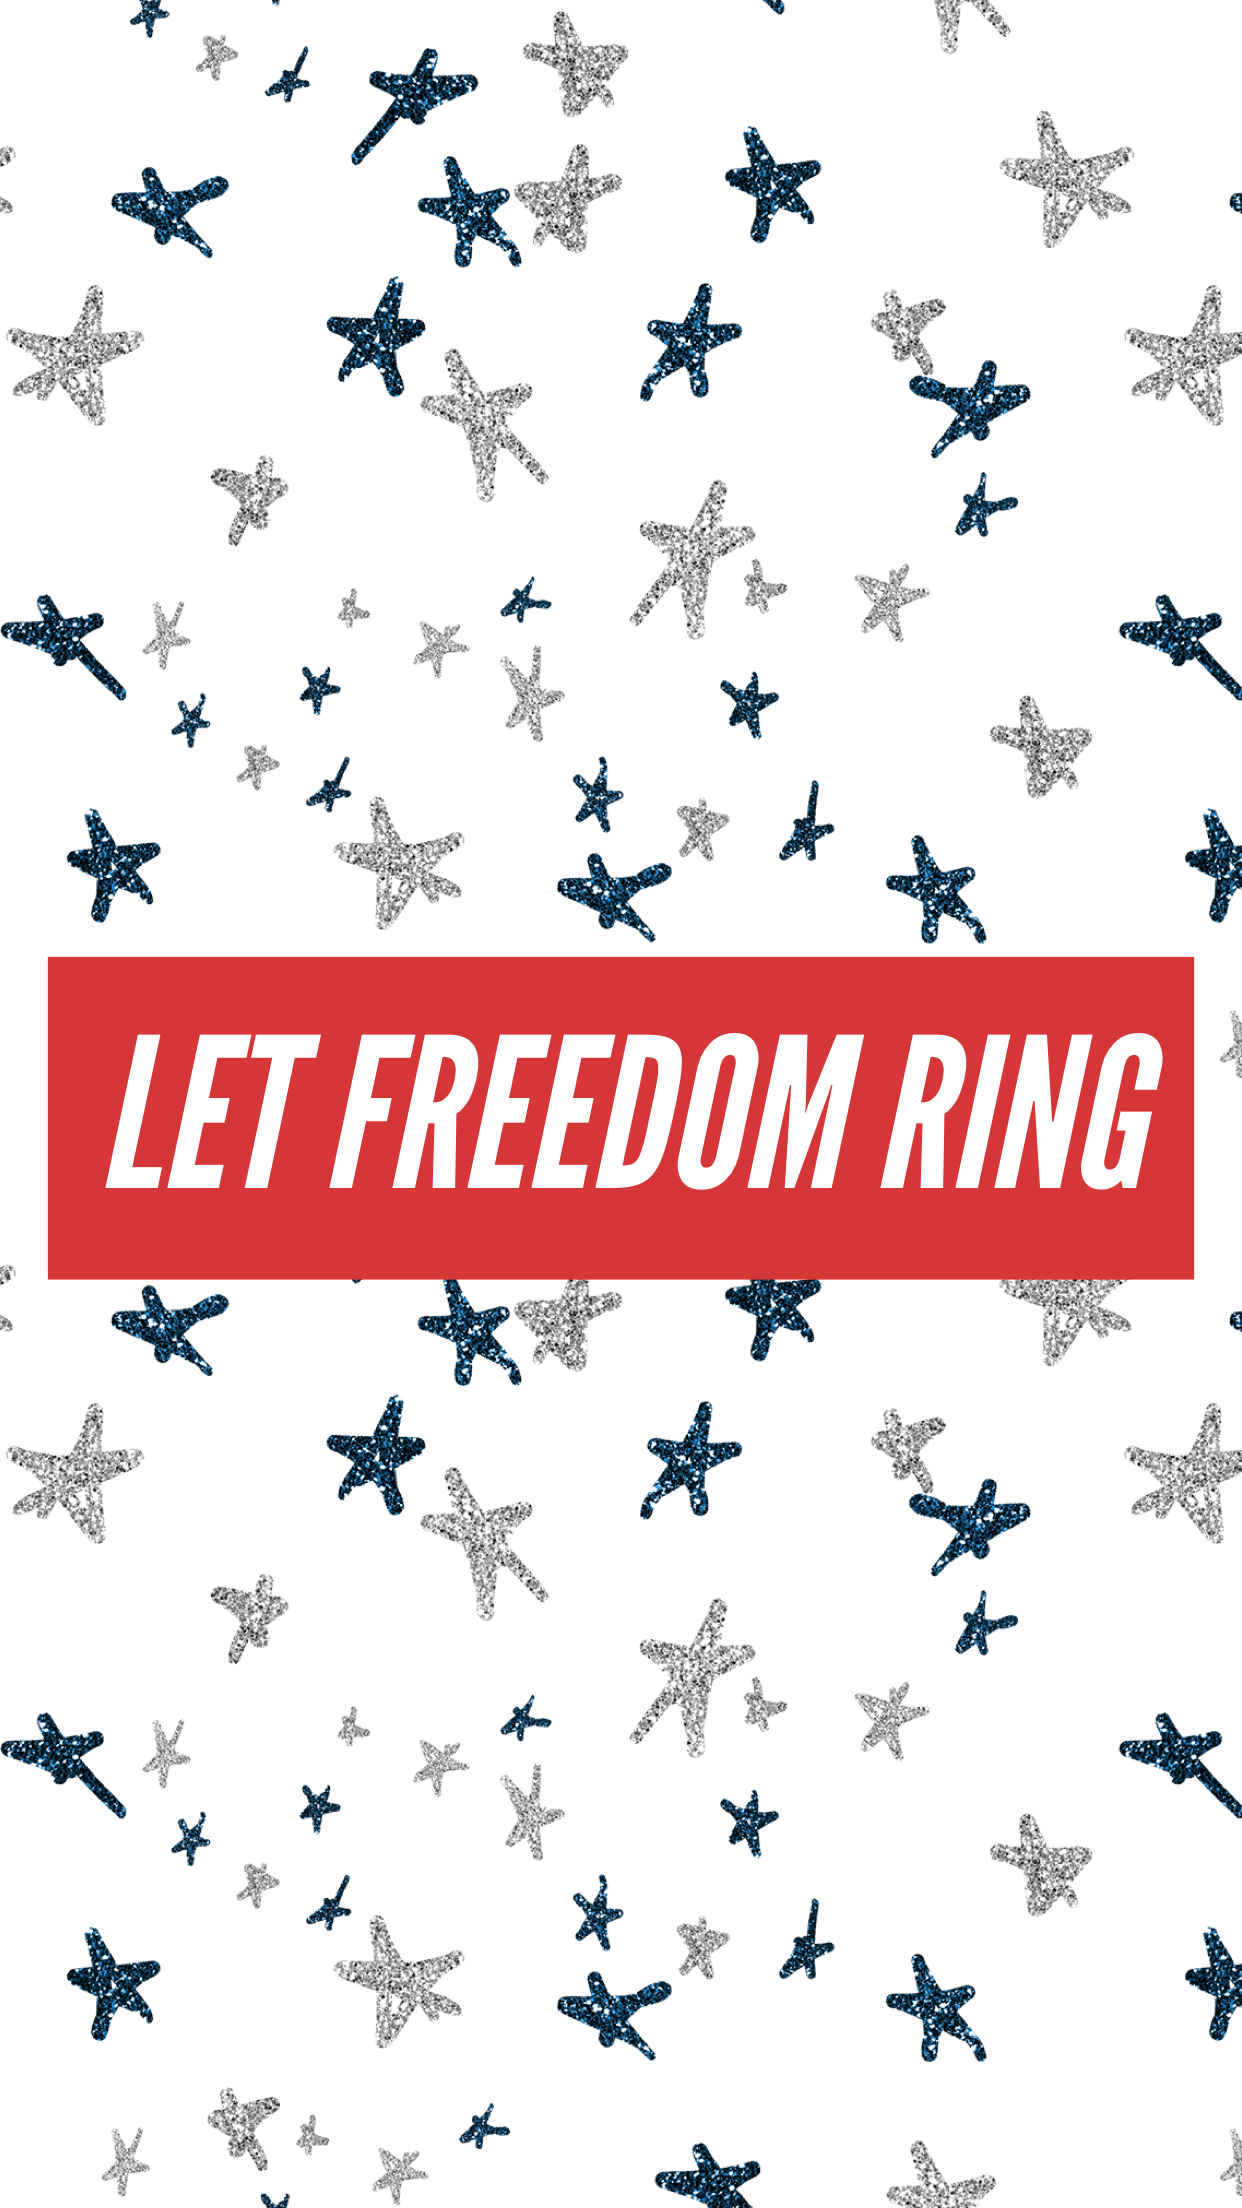 freedom ring.PNG